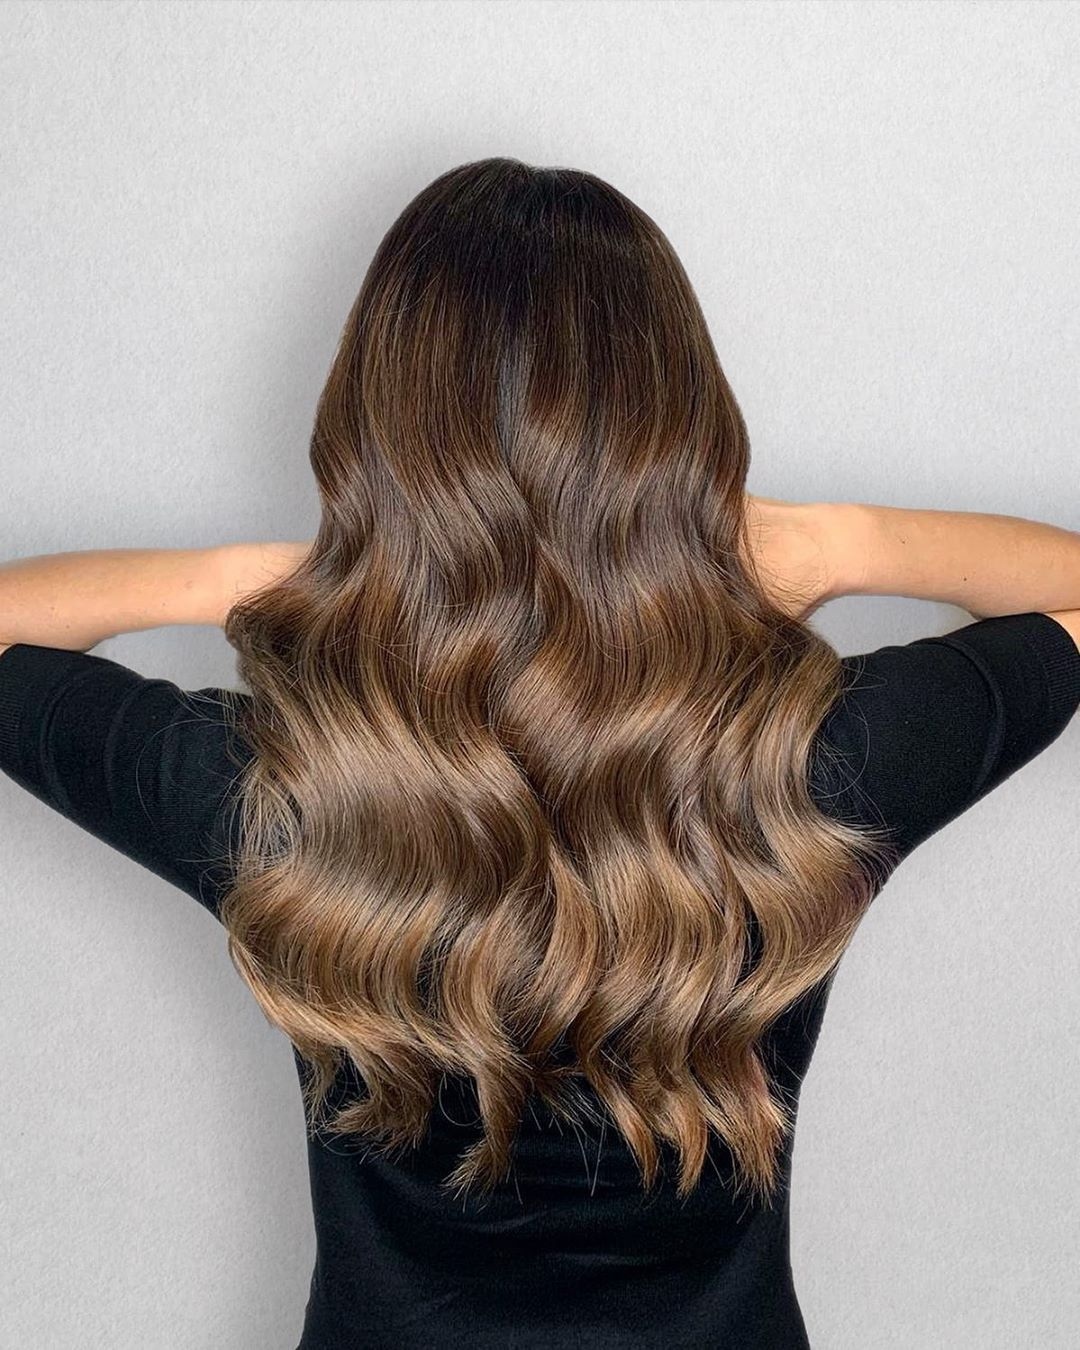 Quay Price 130 Hair Salon Tokyo Michaela May Have Escaped Your Attention Best Hair Salon Coffee Hair Coffee Hair Color